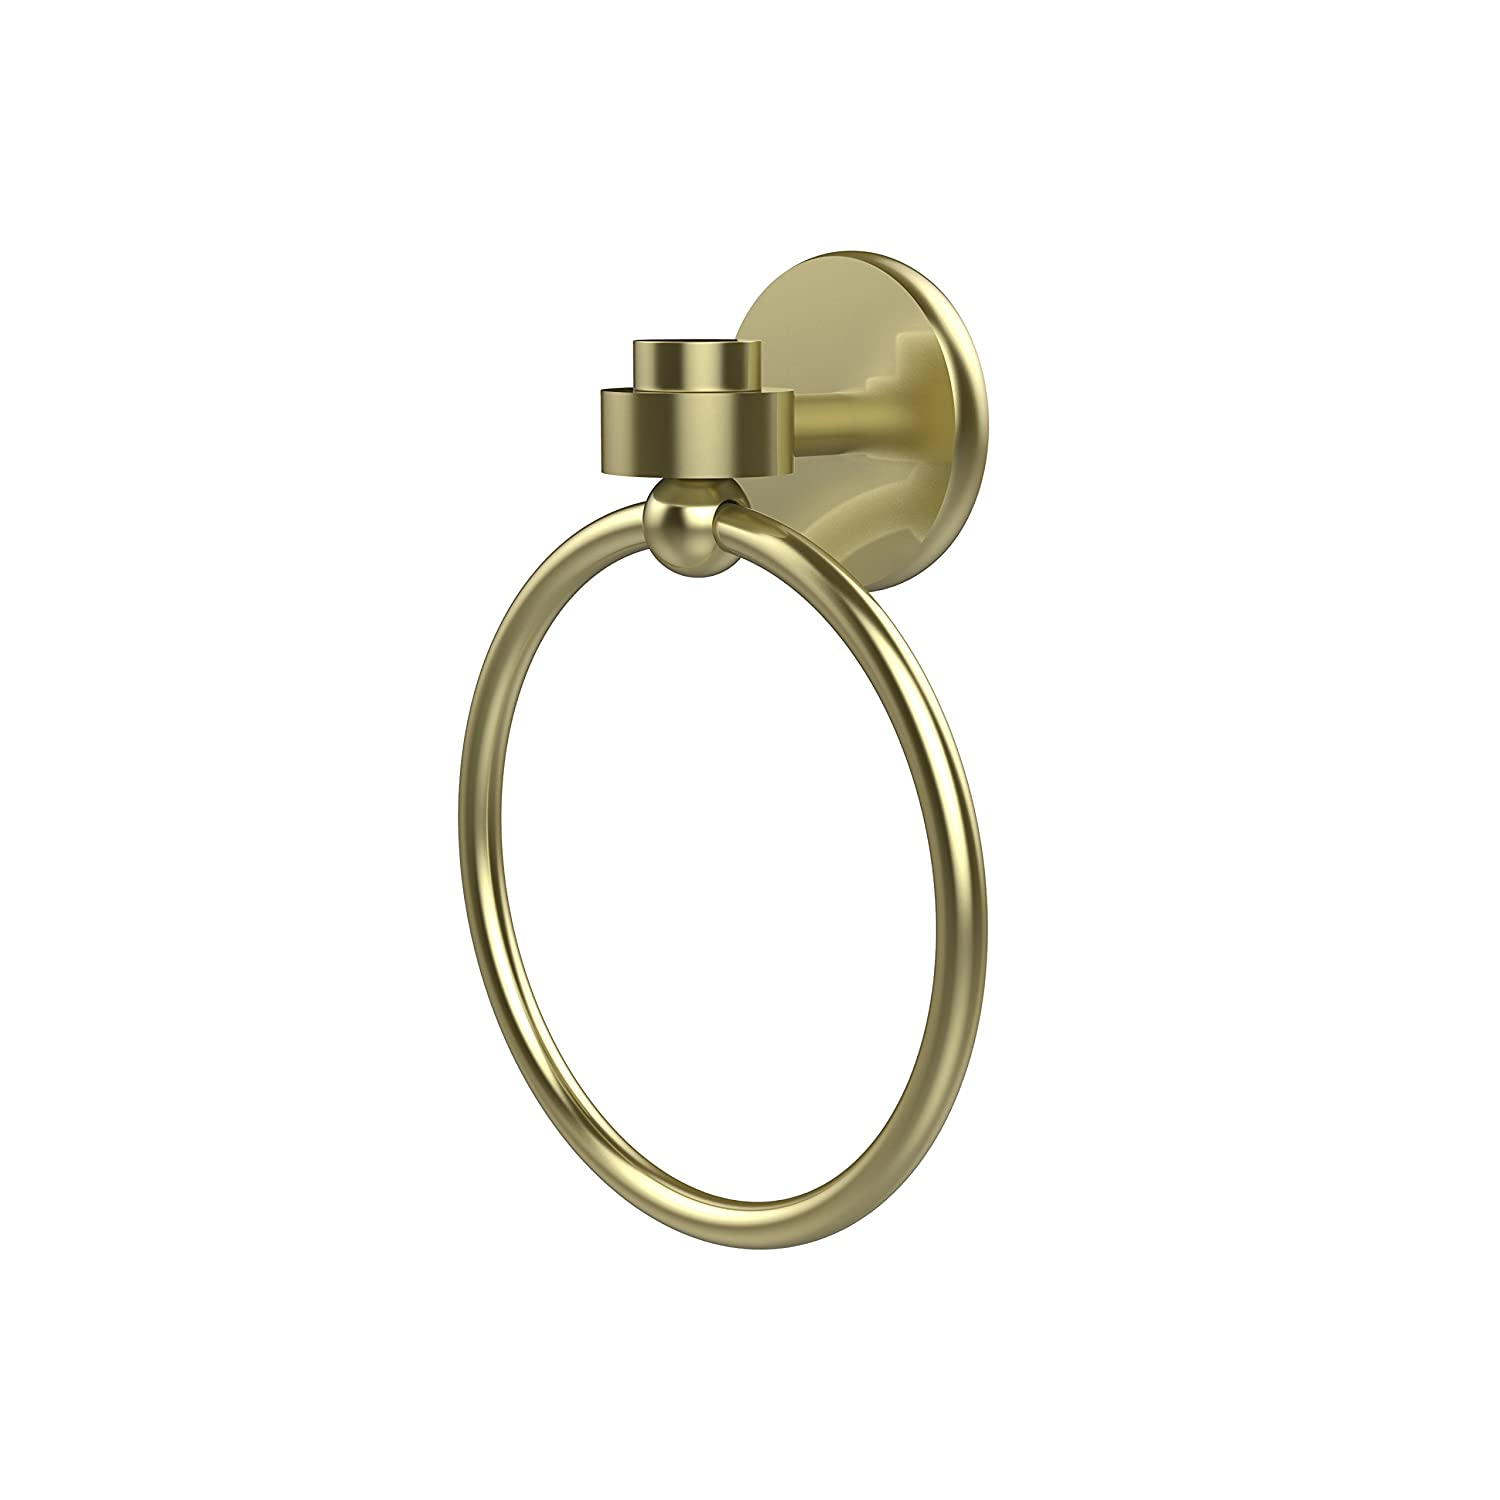 Allied Brass 7116-SBR 6-Inch Towel Ring, Satin Brass by Allied Brass B00463S9TQ